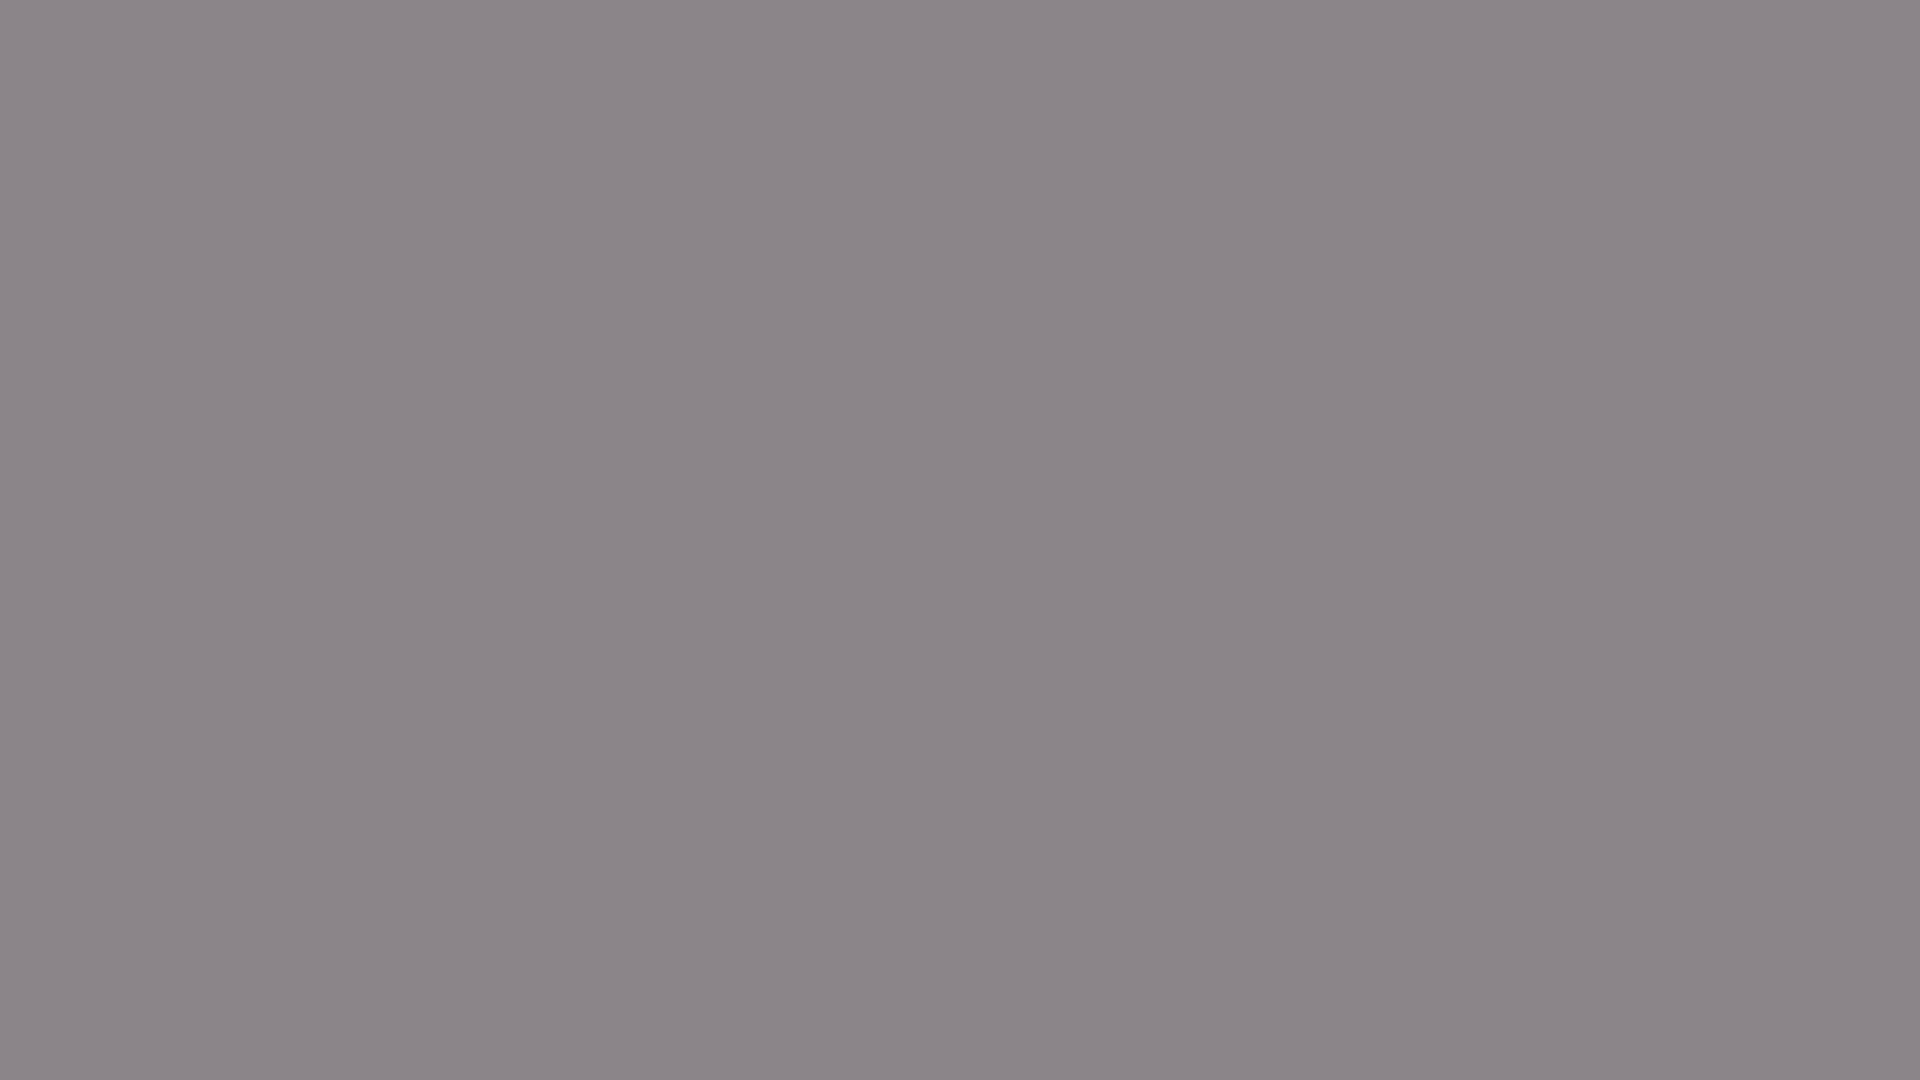 1920x1080 Taupe Gray Solid Color Background